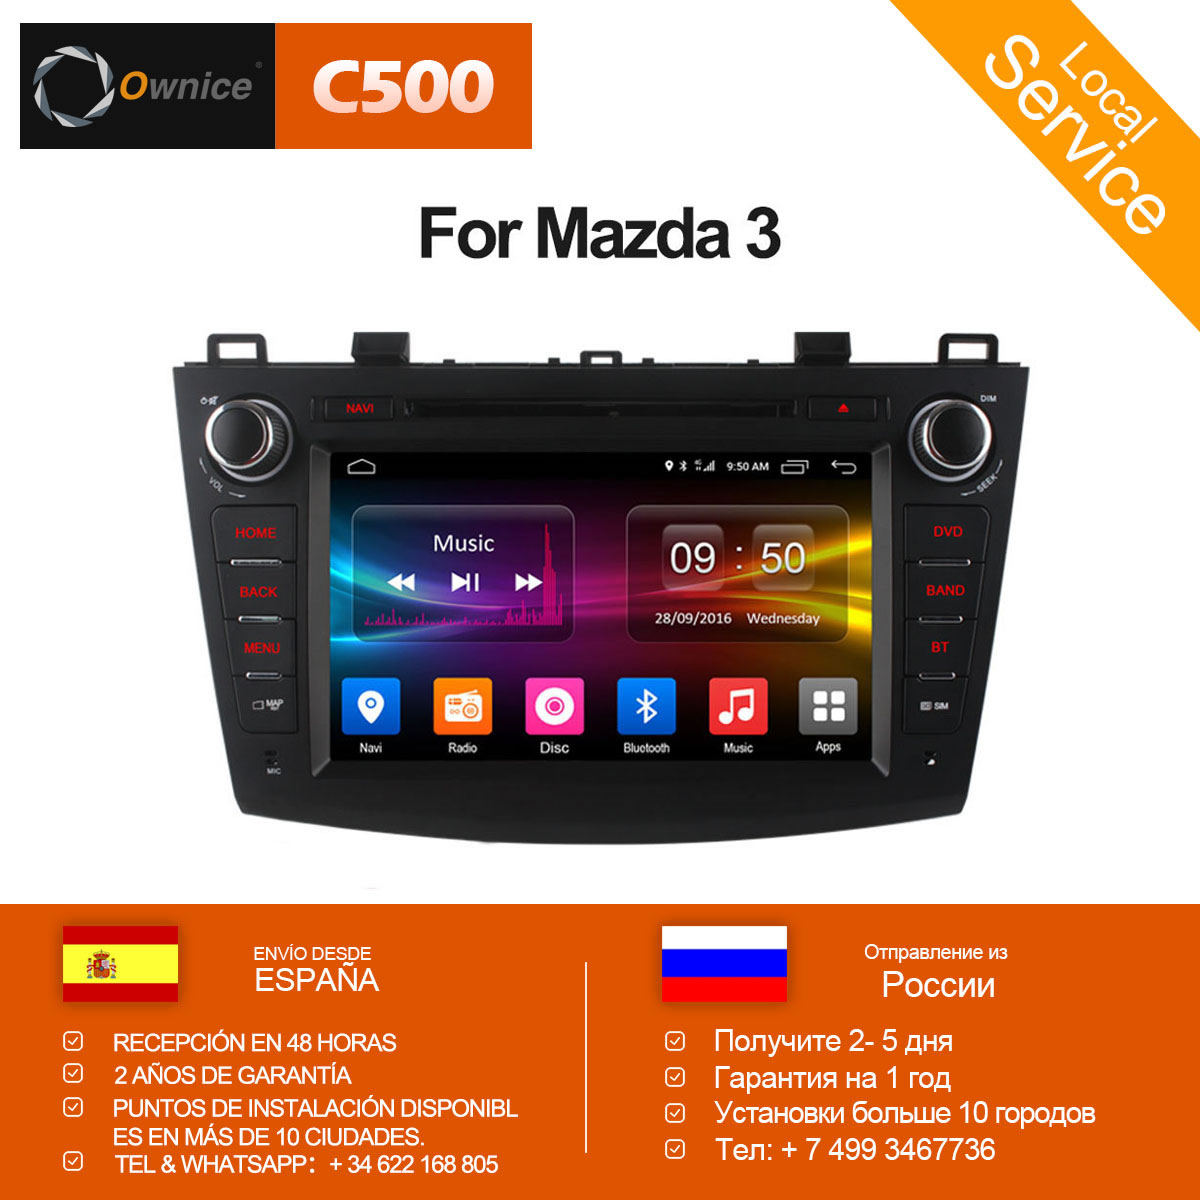 Ownice C500 Octa 8 Core Android 6.0 Car DVD player For Mazda 3 2008-2013 WIFI Radio GPS Navi OBD DVR 2GB RAM 32GB ROM Support 4G цена 2017